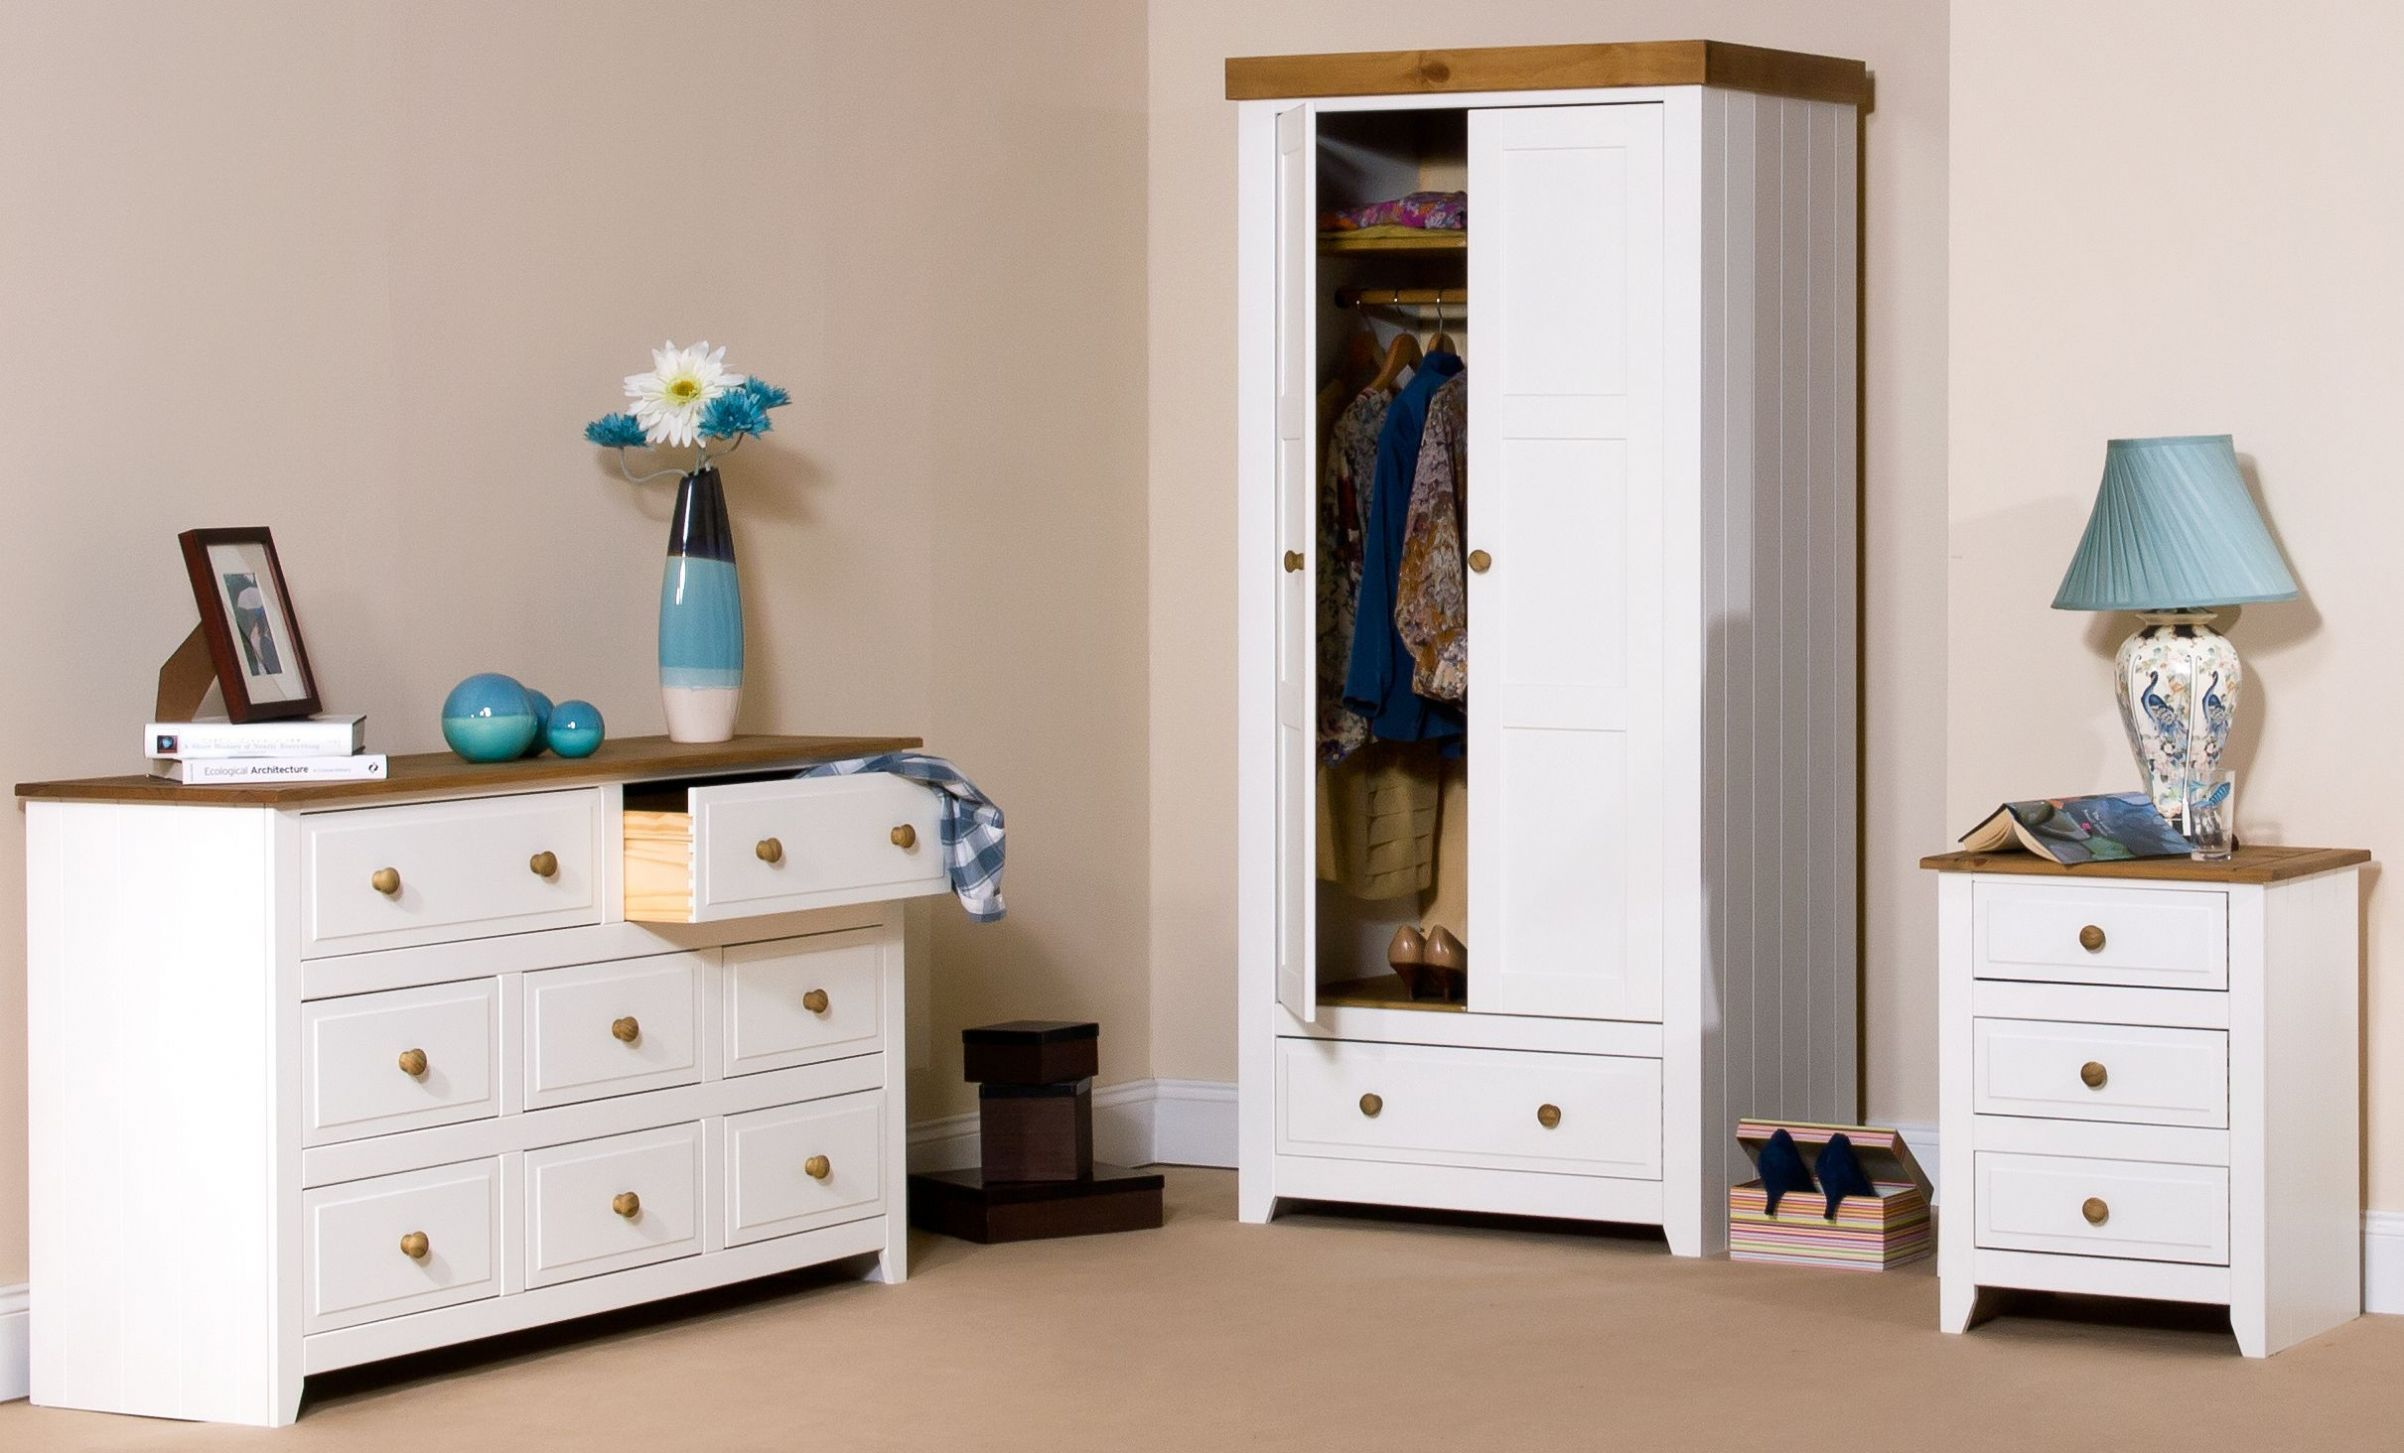 Our Capri collection is a traditional wooden painted white range